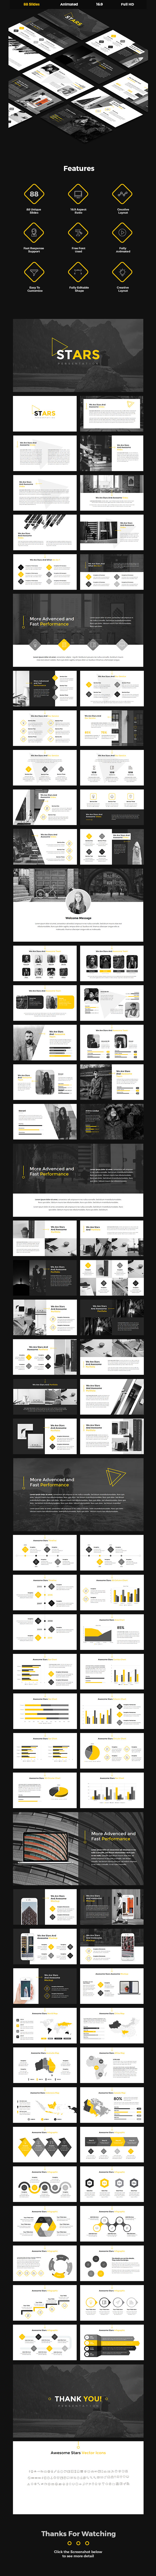 Stars - Creative Google Slides Template - Google Slides Presentation Templates